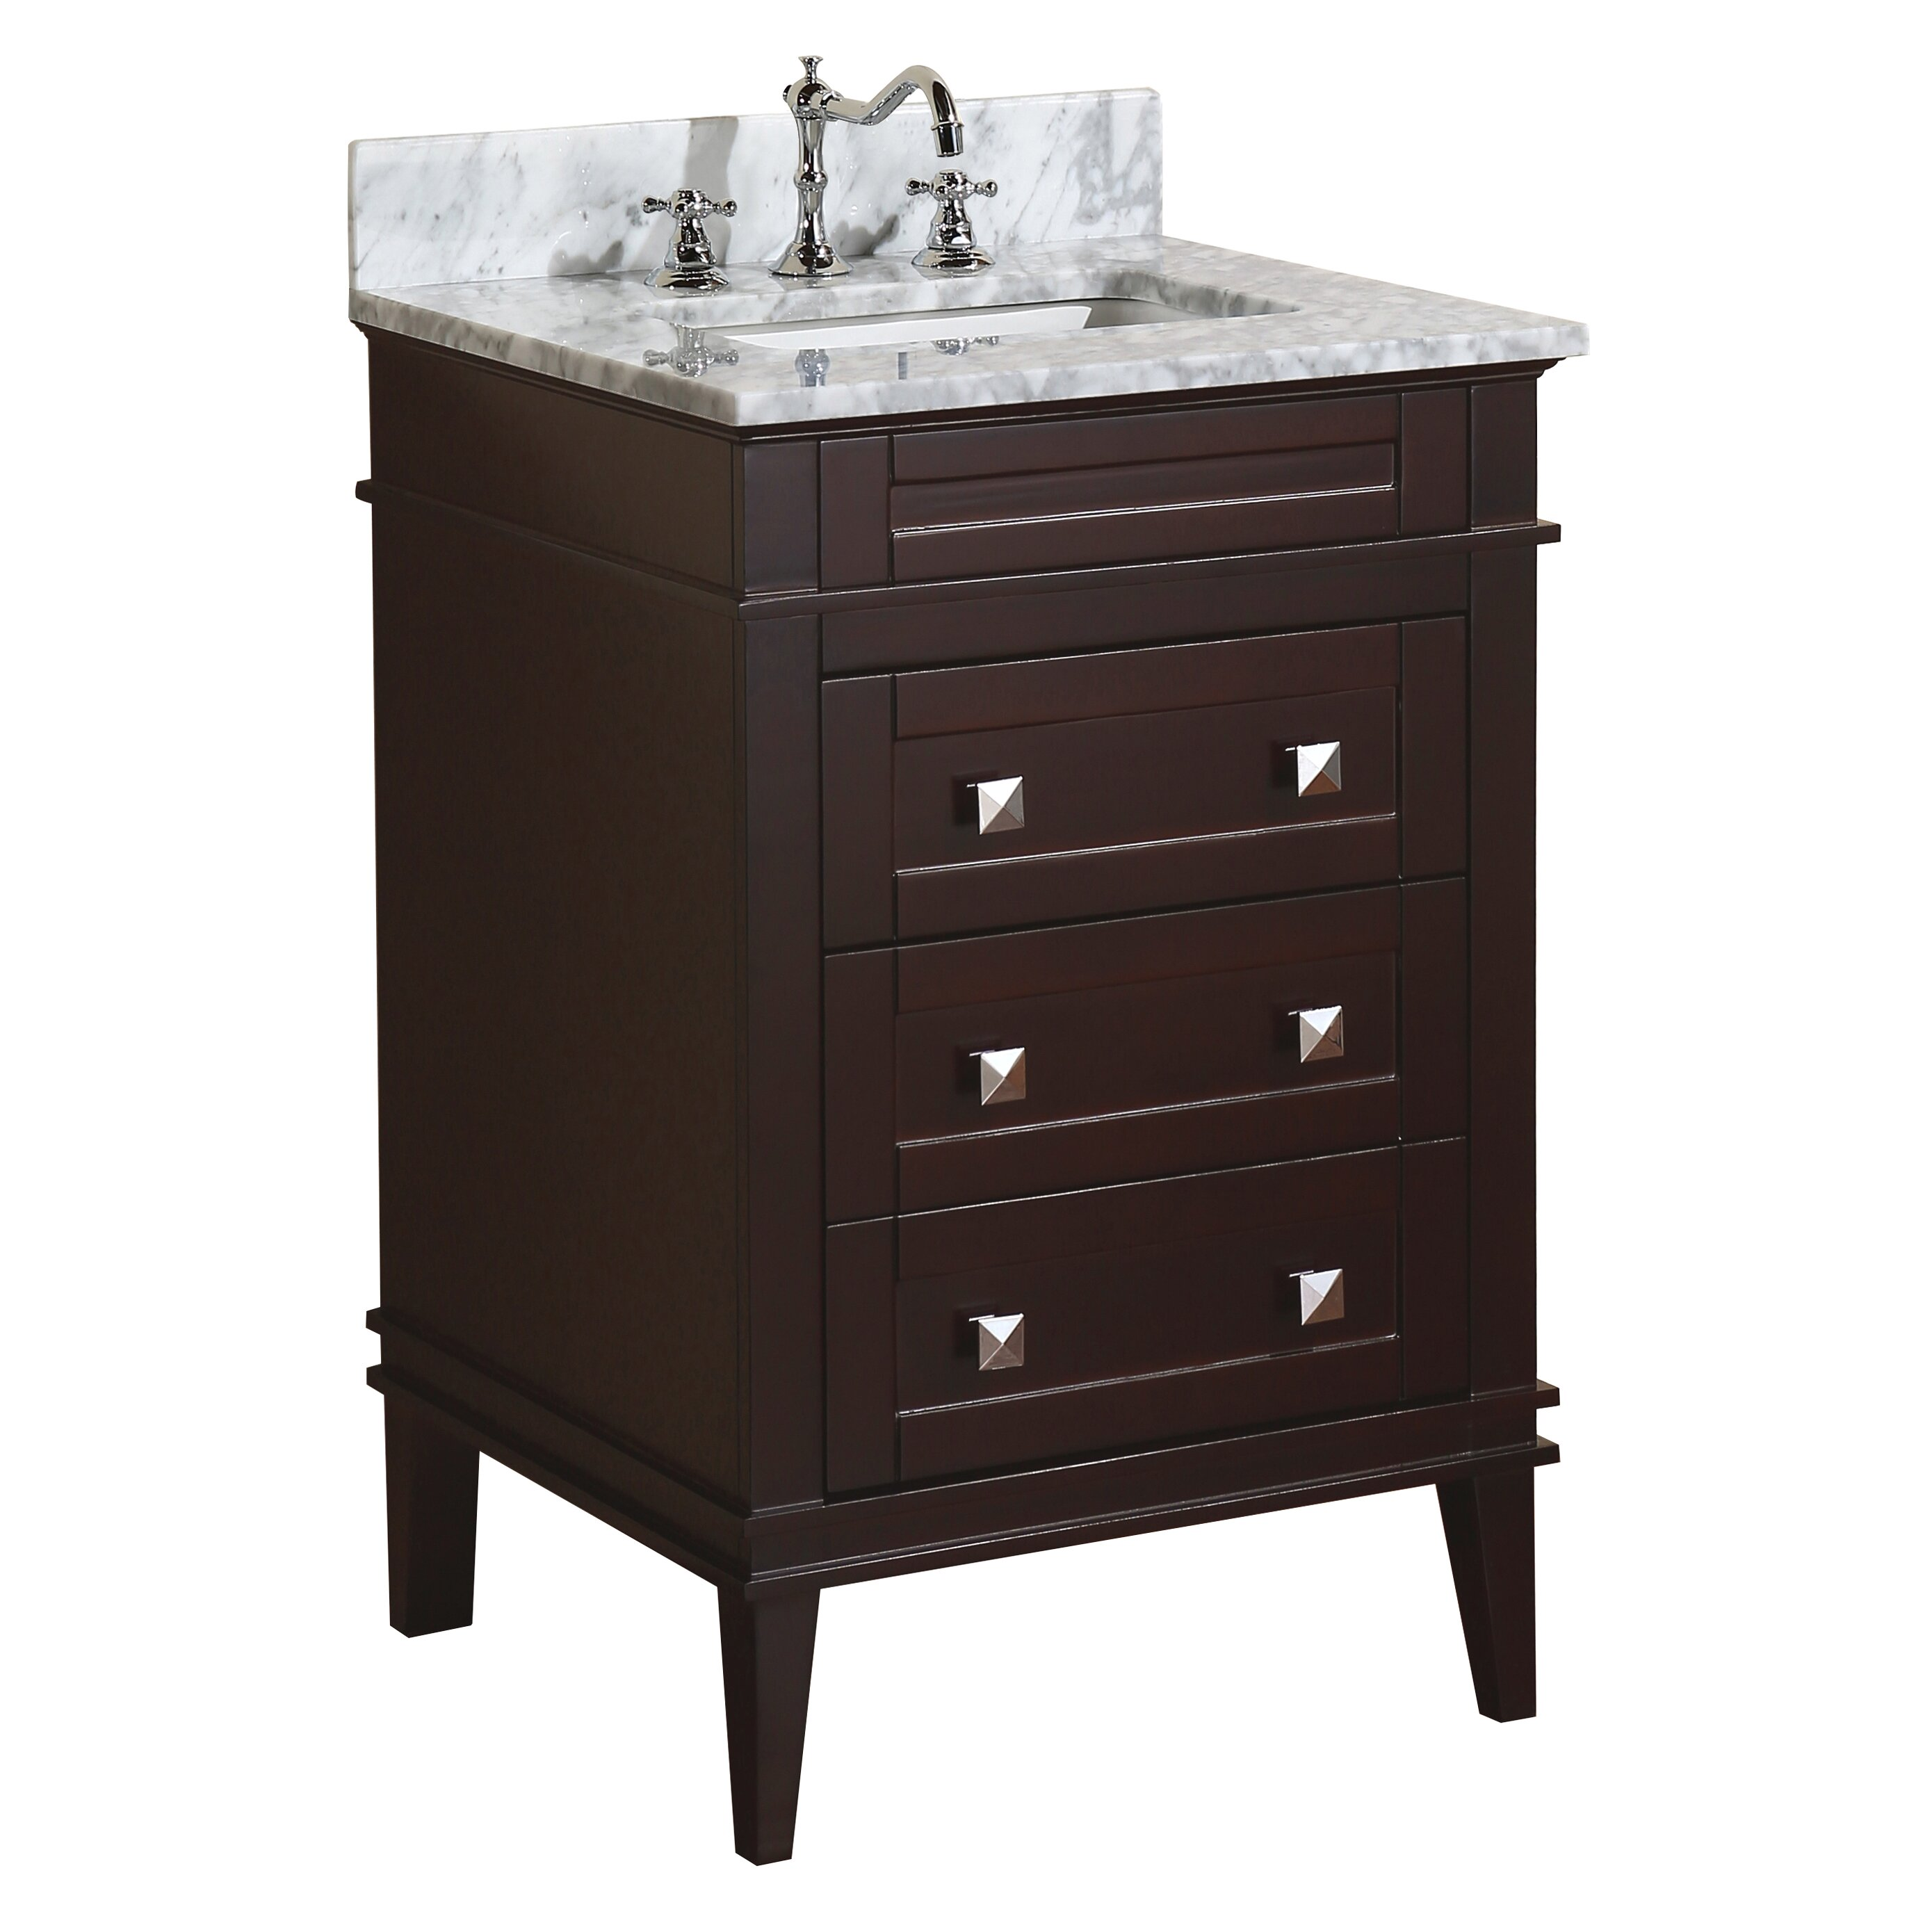 "KBC Eleanor 24"" Single Bathroom Vanity Set & Reviews"